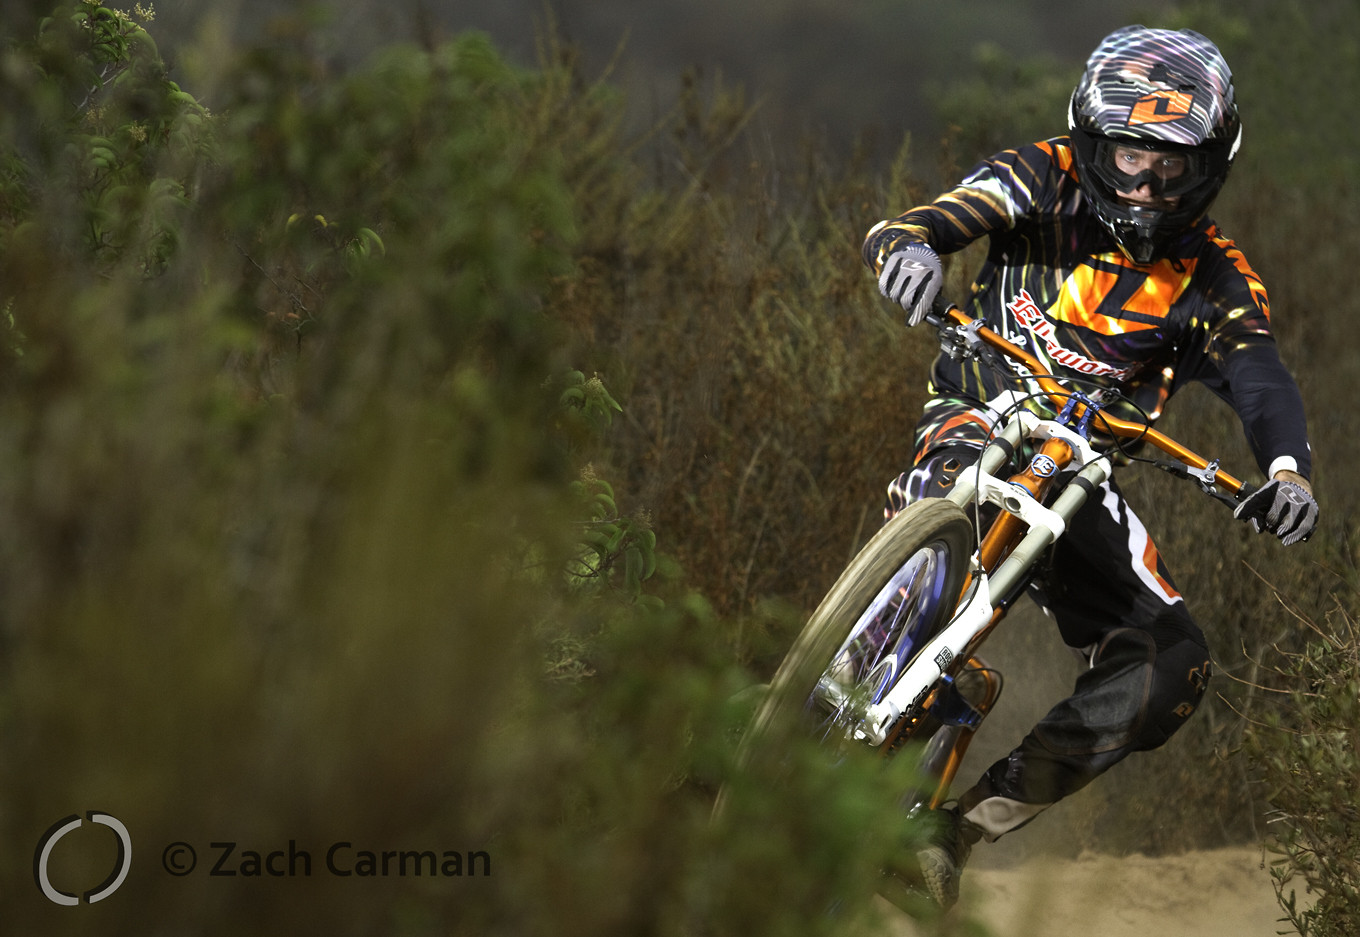 Andre Pepin - Captures by Carman - Mountain Biking Pictures - Vital MTB